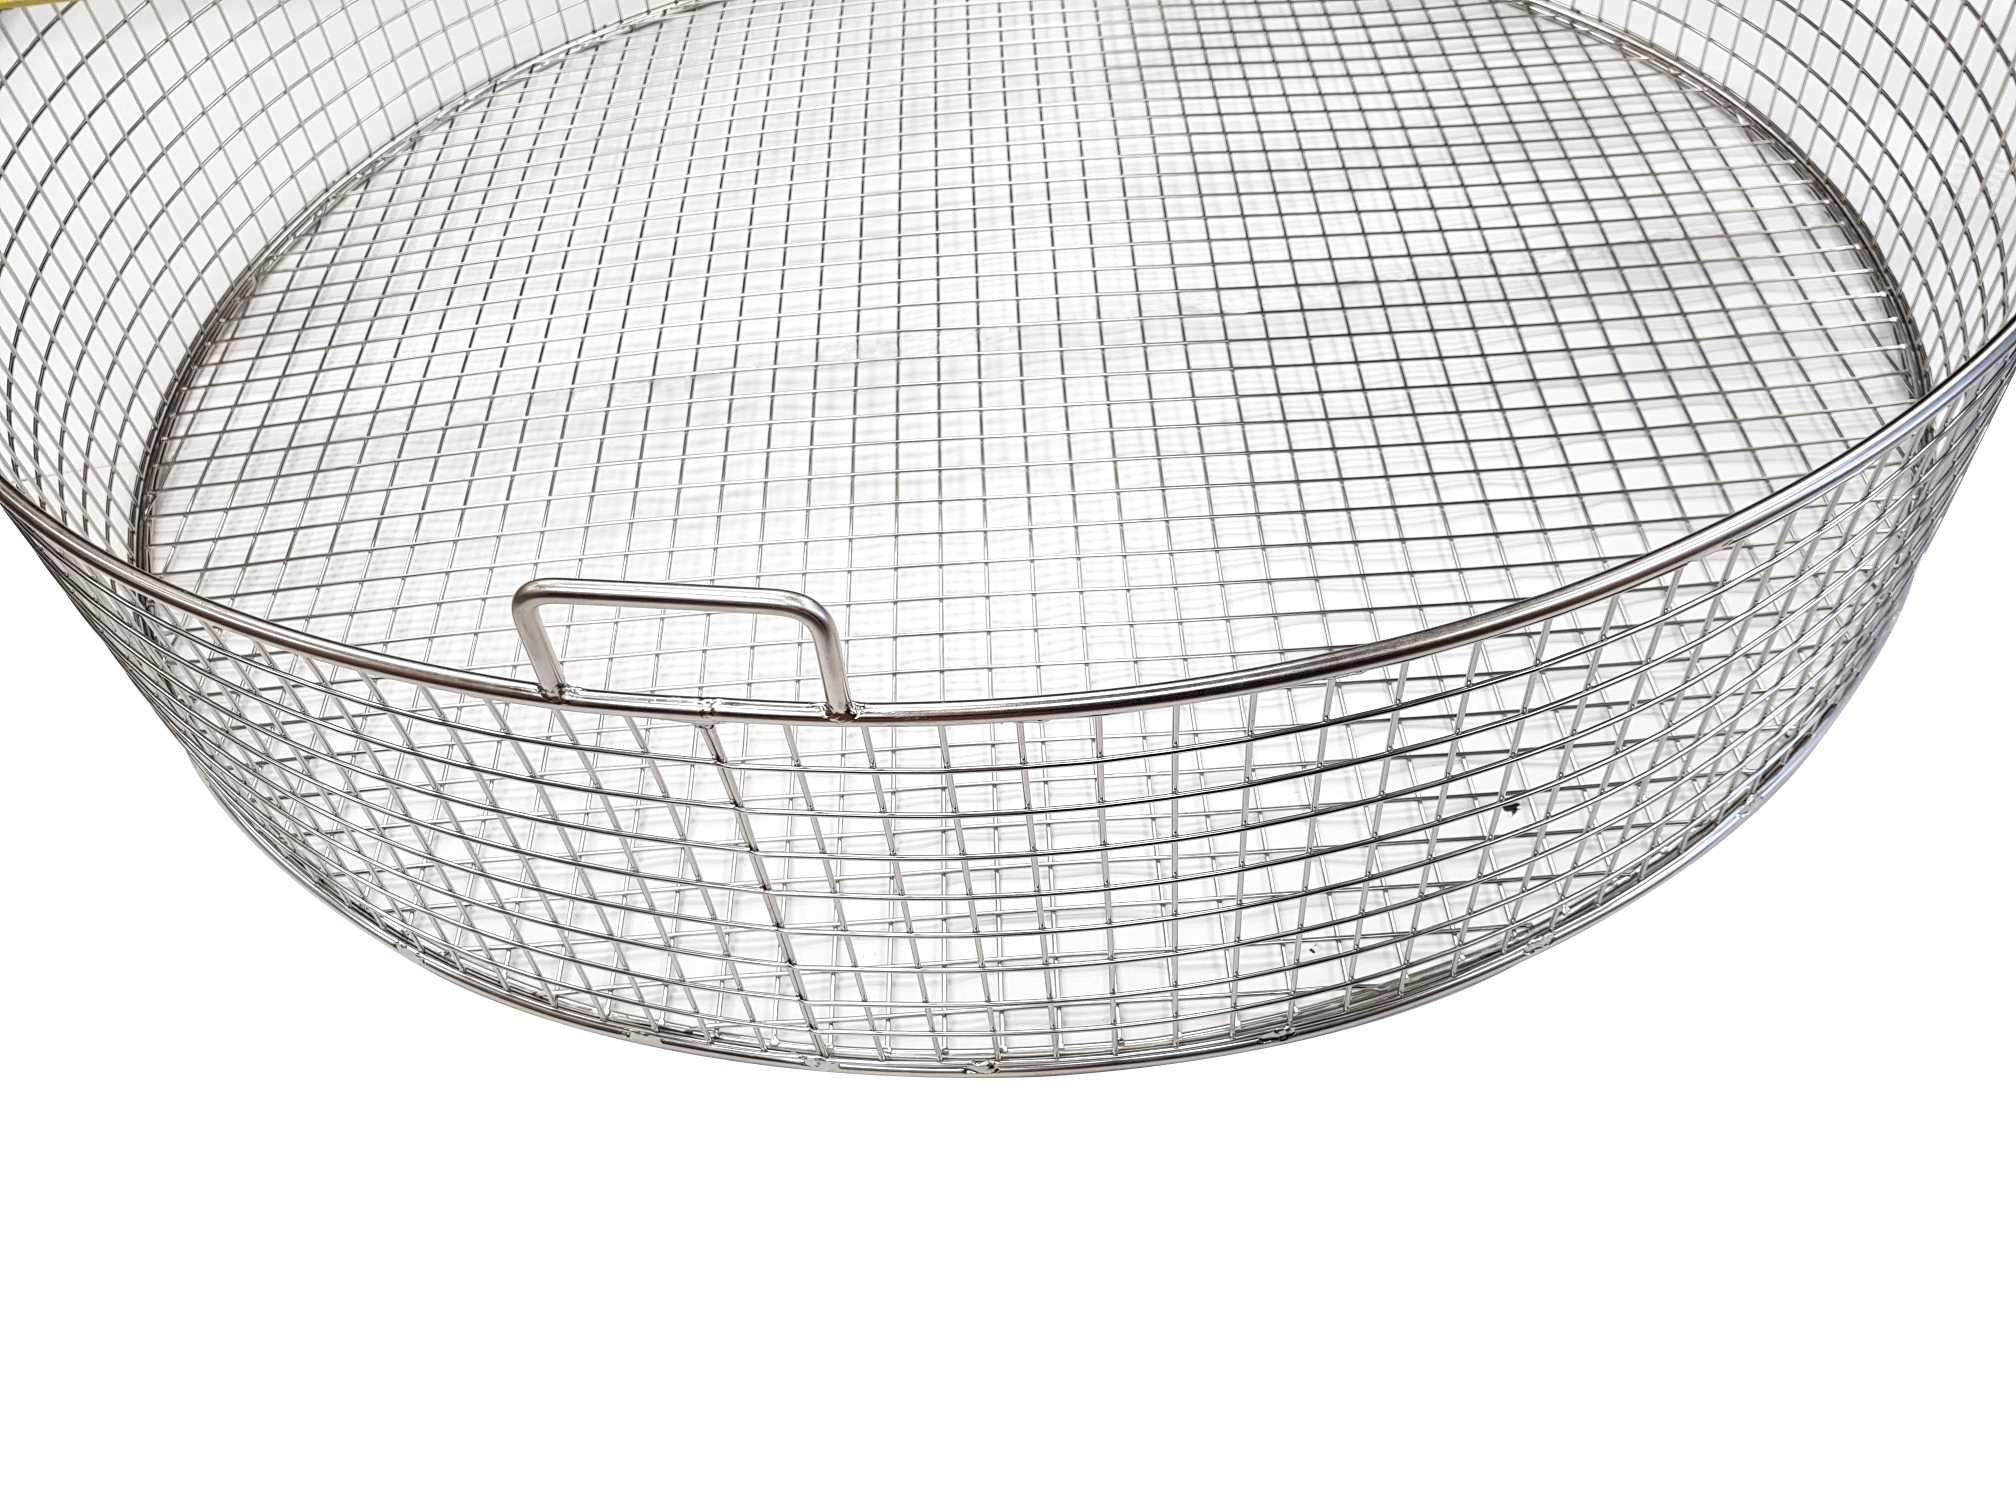 Parts washing basket